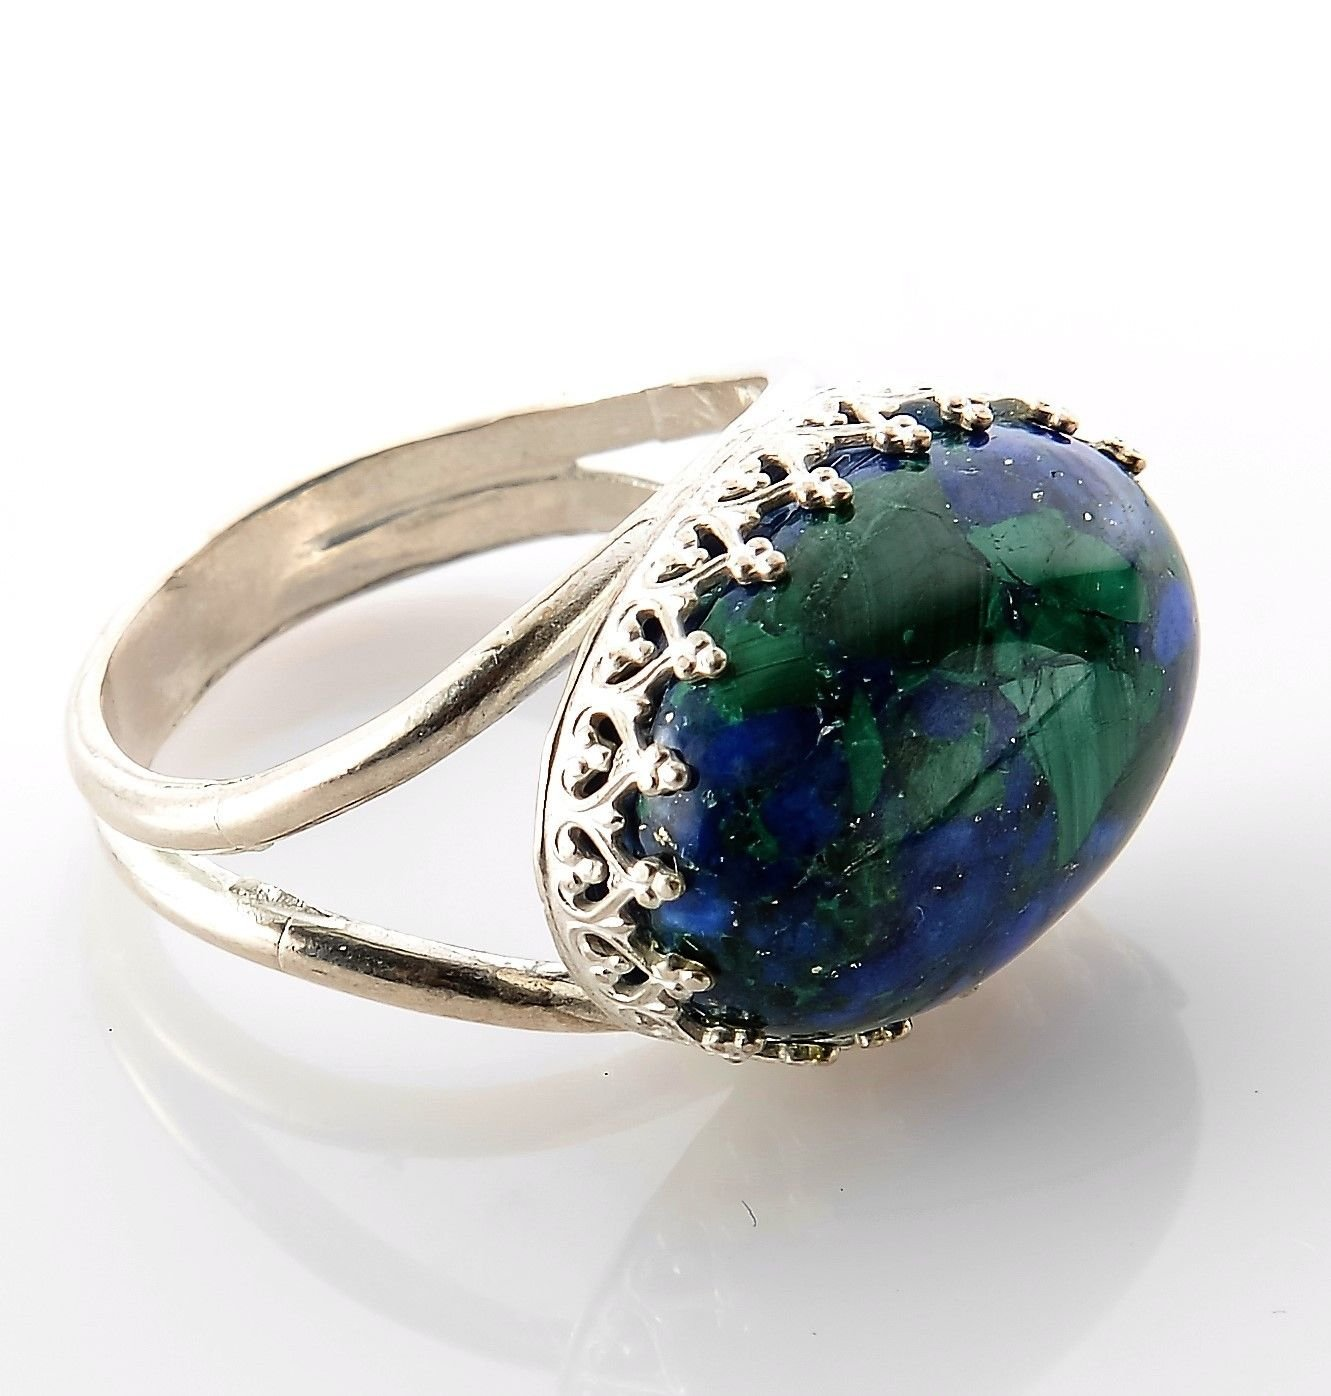 Sterling silver 925 ring & Eilat king solomon stone size 7.5 ! Gift & Jewelry